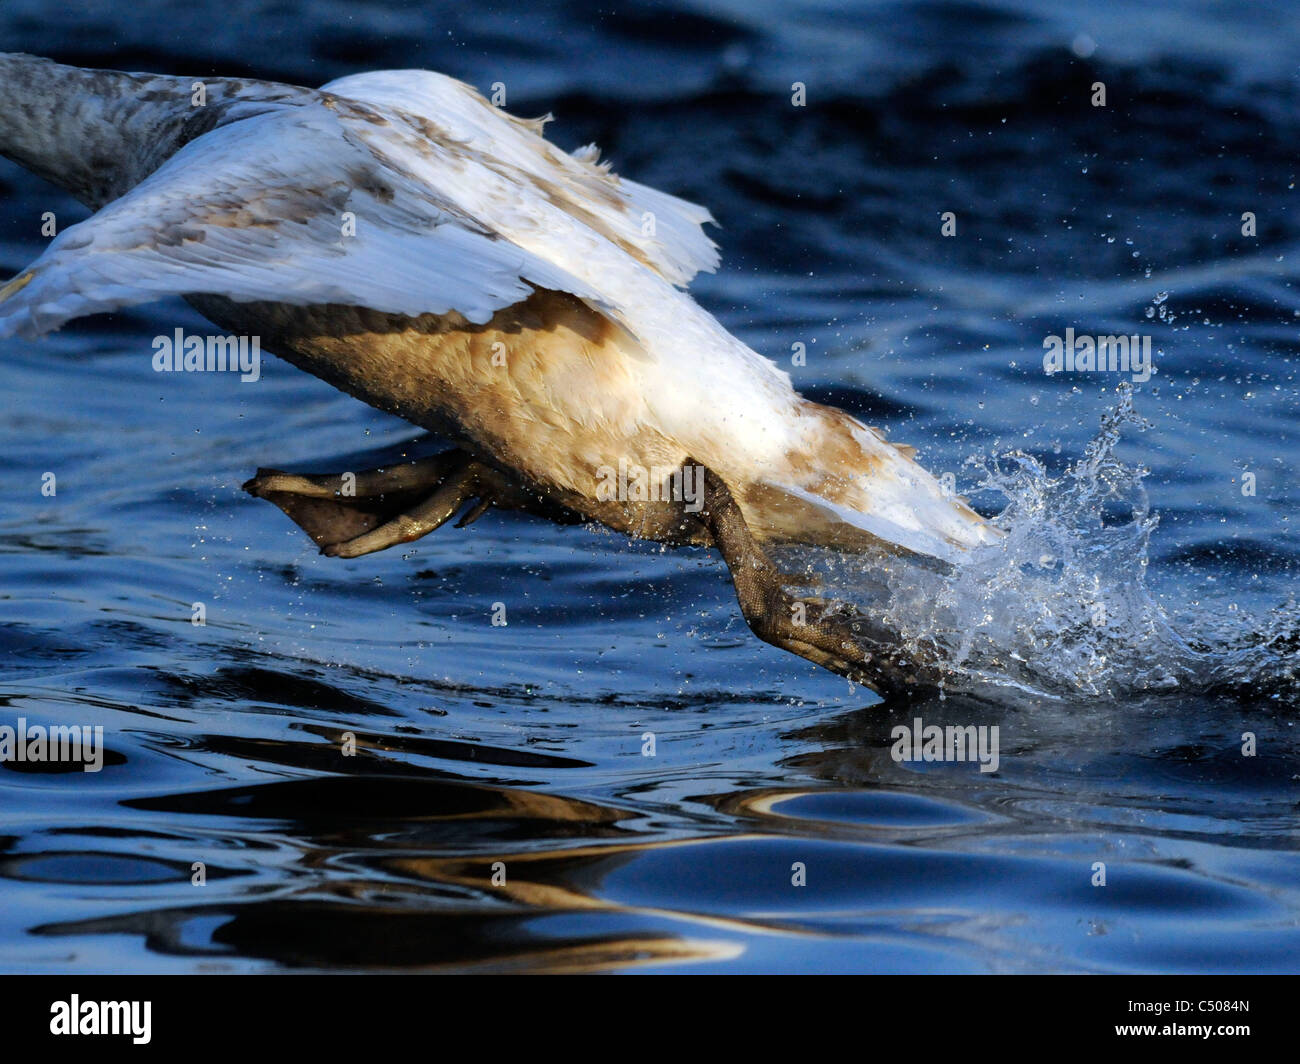 A young swan taking off from water. - Stock Image